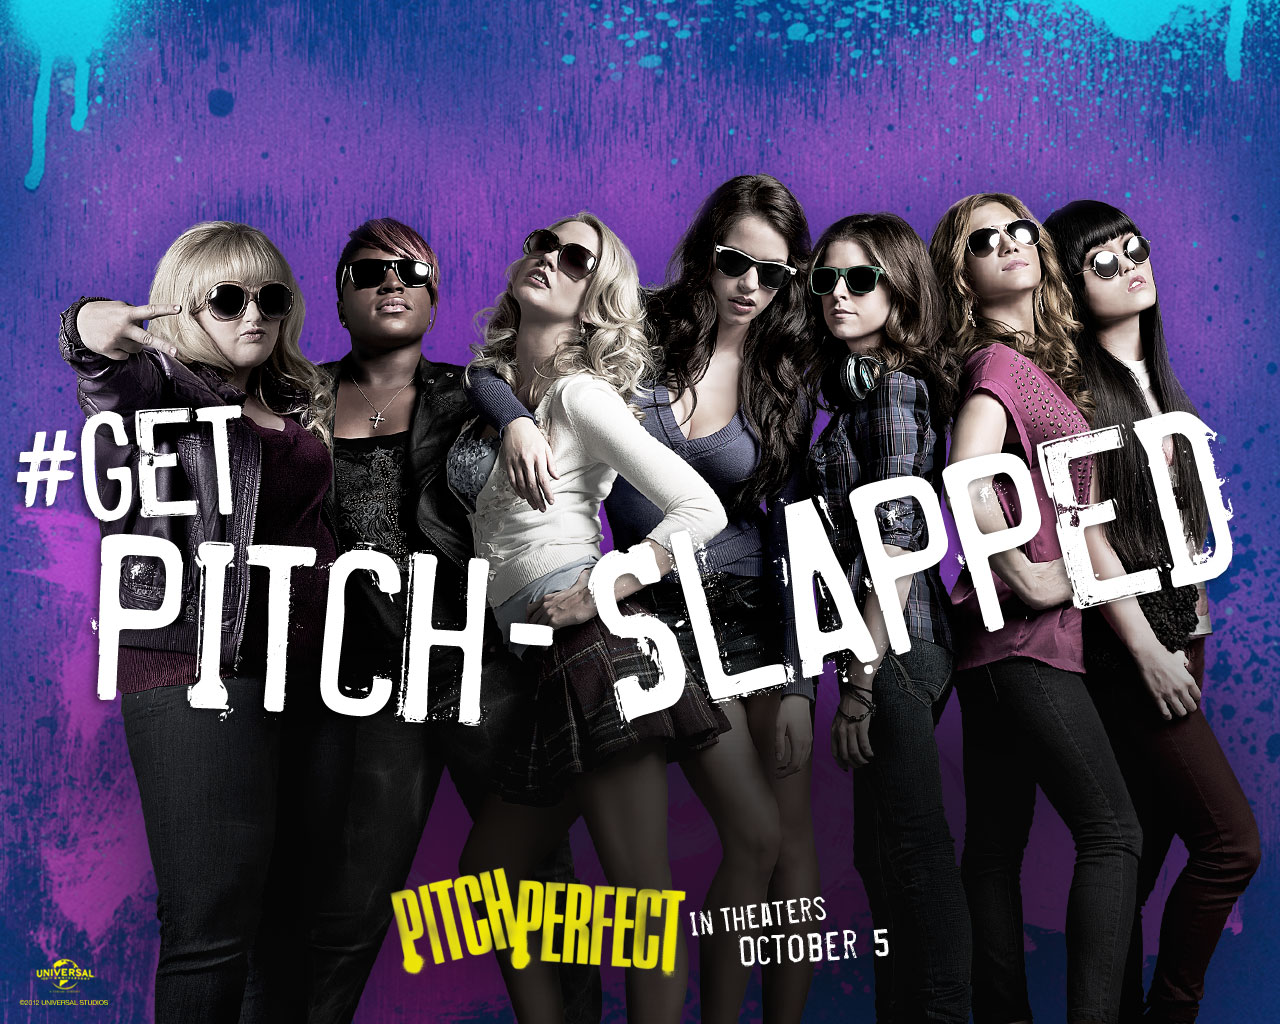 Pitch Perfect (2012) movie poster   Pitch Perfect 2012 Movie Poster